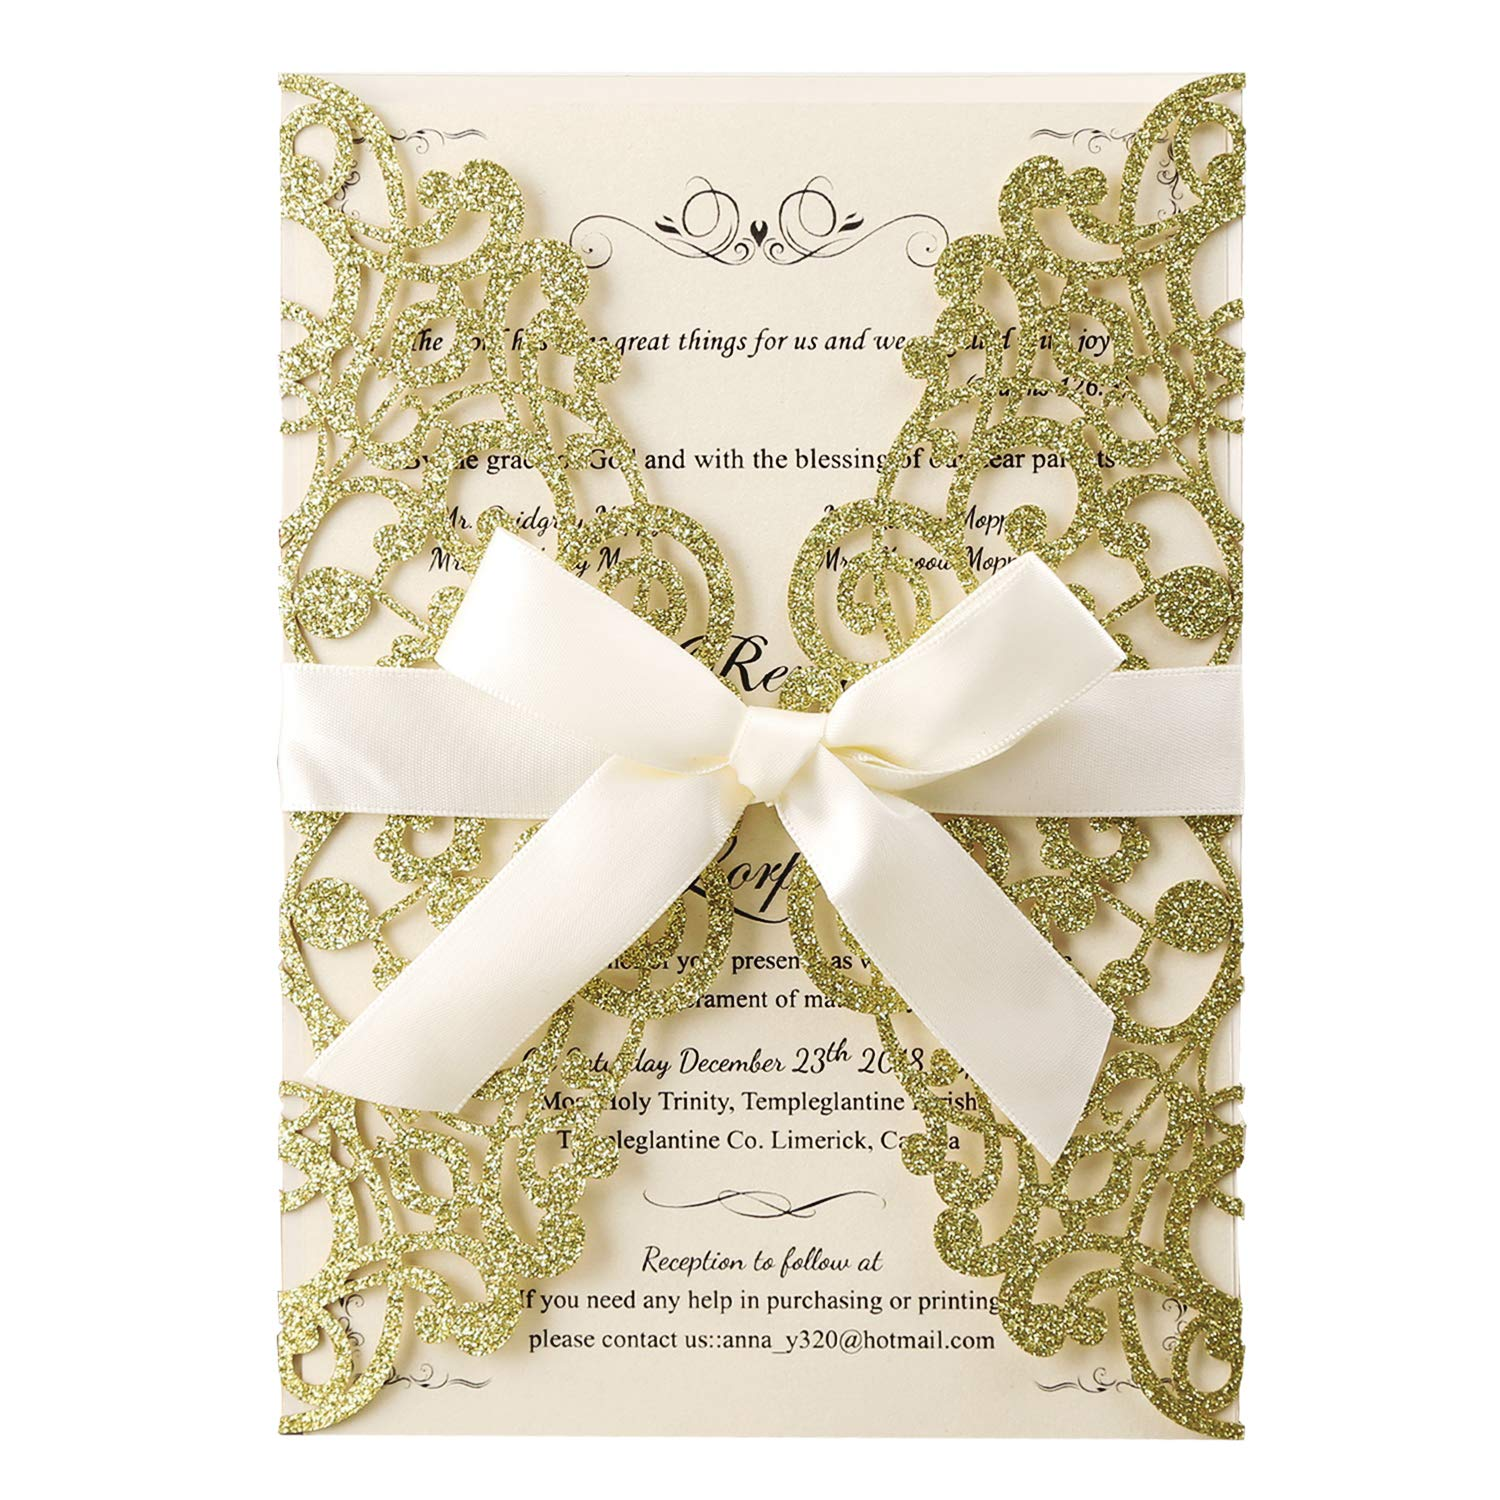 Amazon Hosmsua 20x Gold Glitter Laser Cut Flora Lace Wedding Invitations Cards With Blank Inner Sheets And Envelopes For Bridal Shower Engagement: Blank Wedding Invitation Cards At Websimilar.org